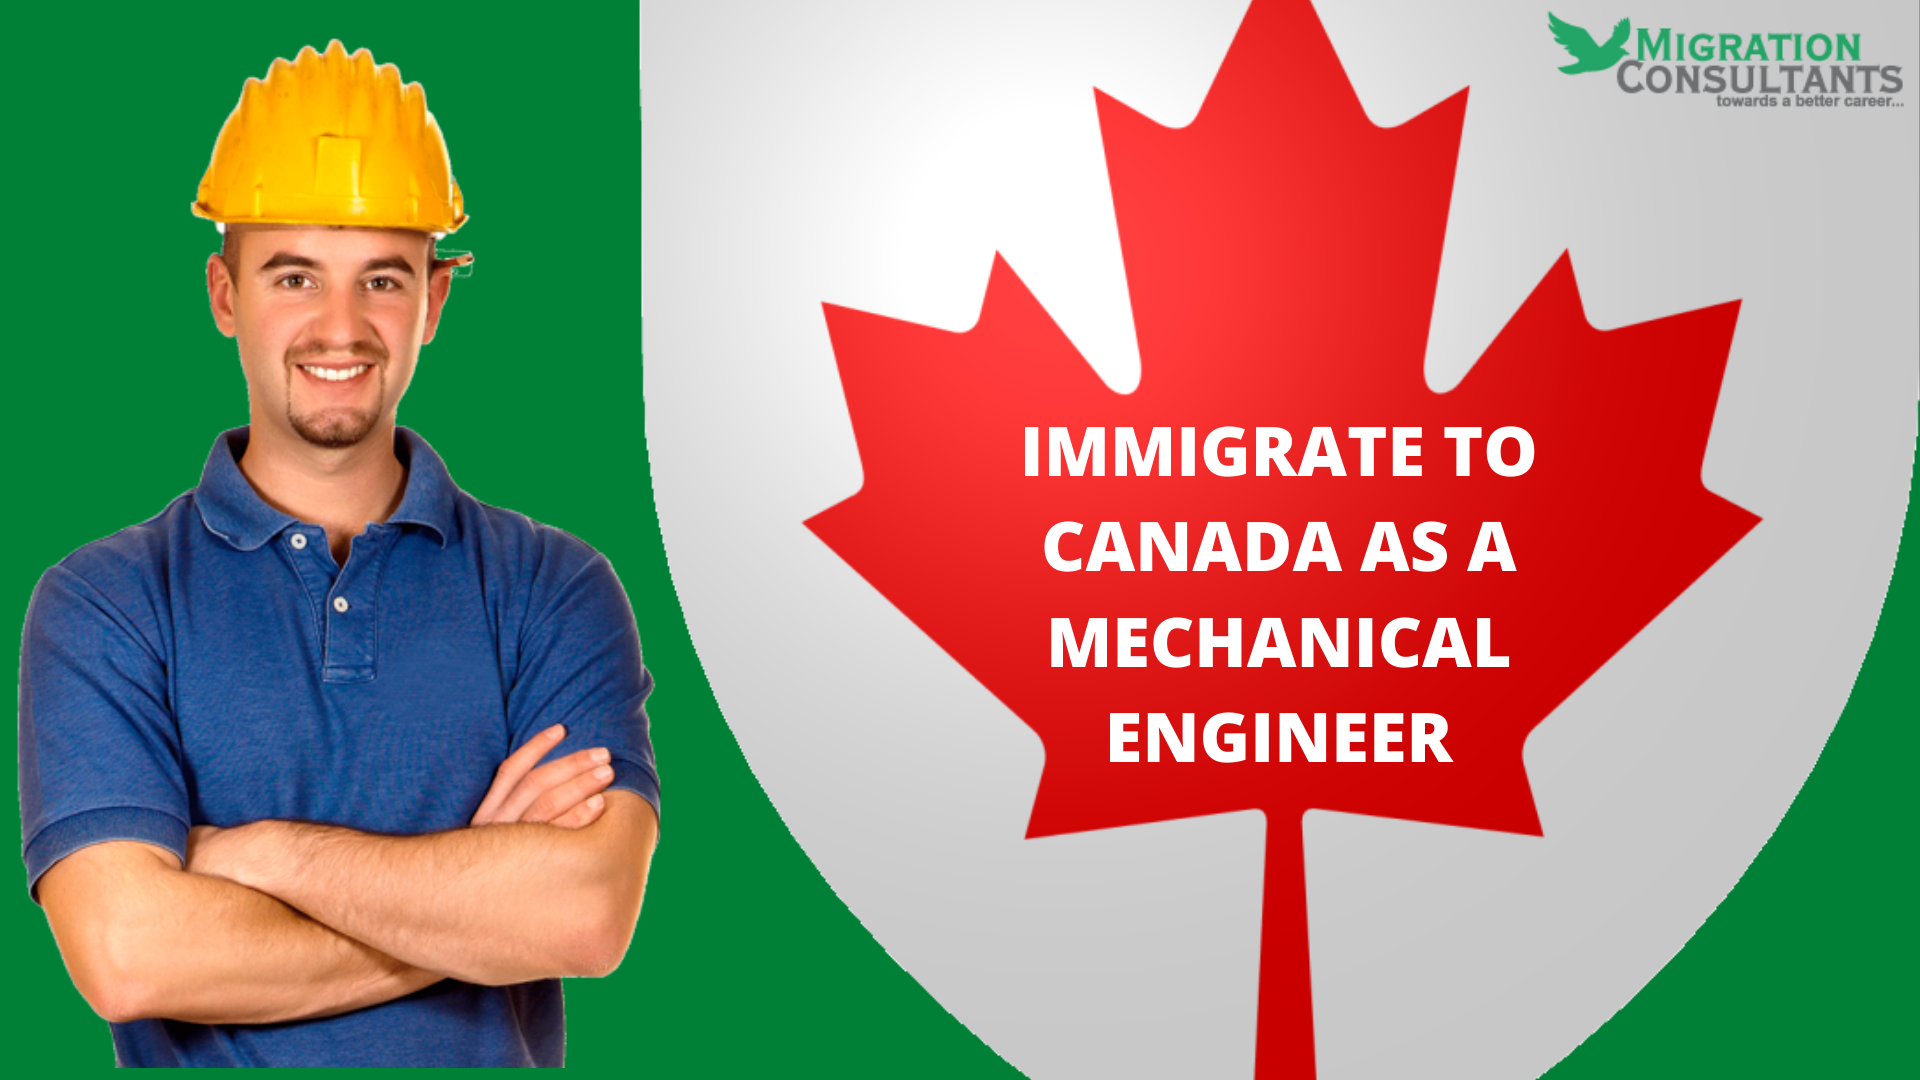 Are you looking to immigrate to Canada as a Mechanical Engineer?